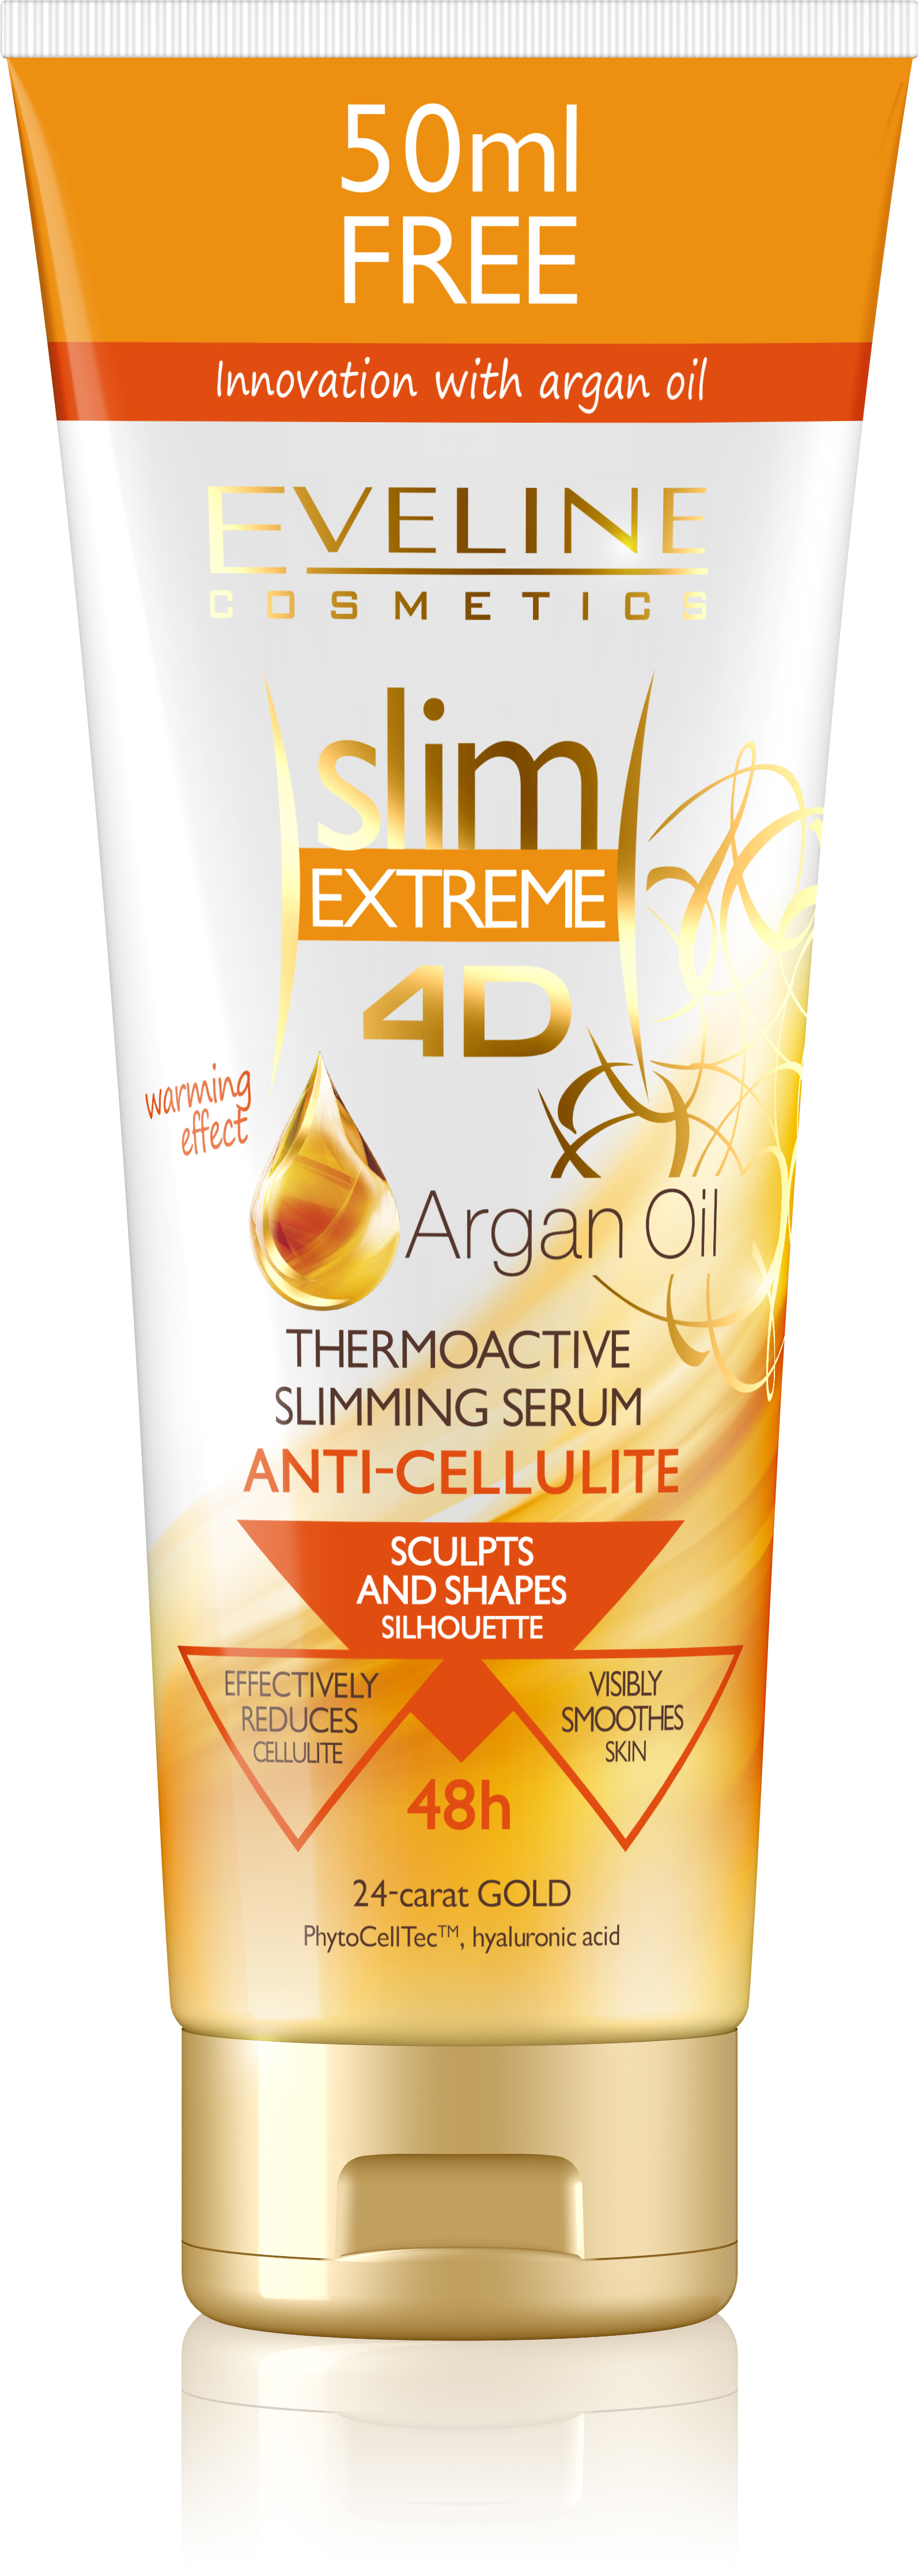 Slim Extreme 4d Argan Oil Thermo Cellulite Serum #slimextreme